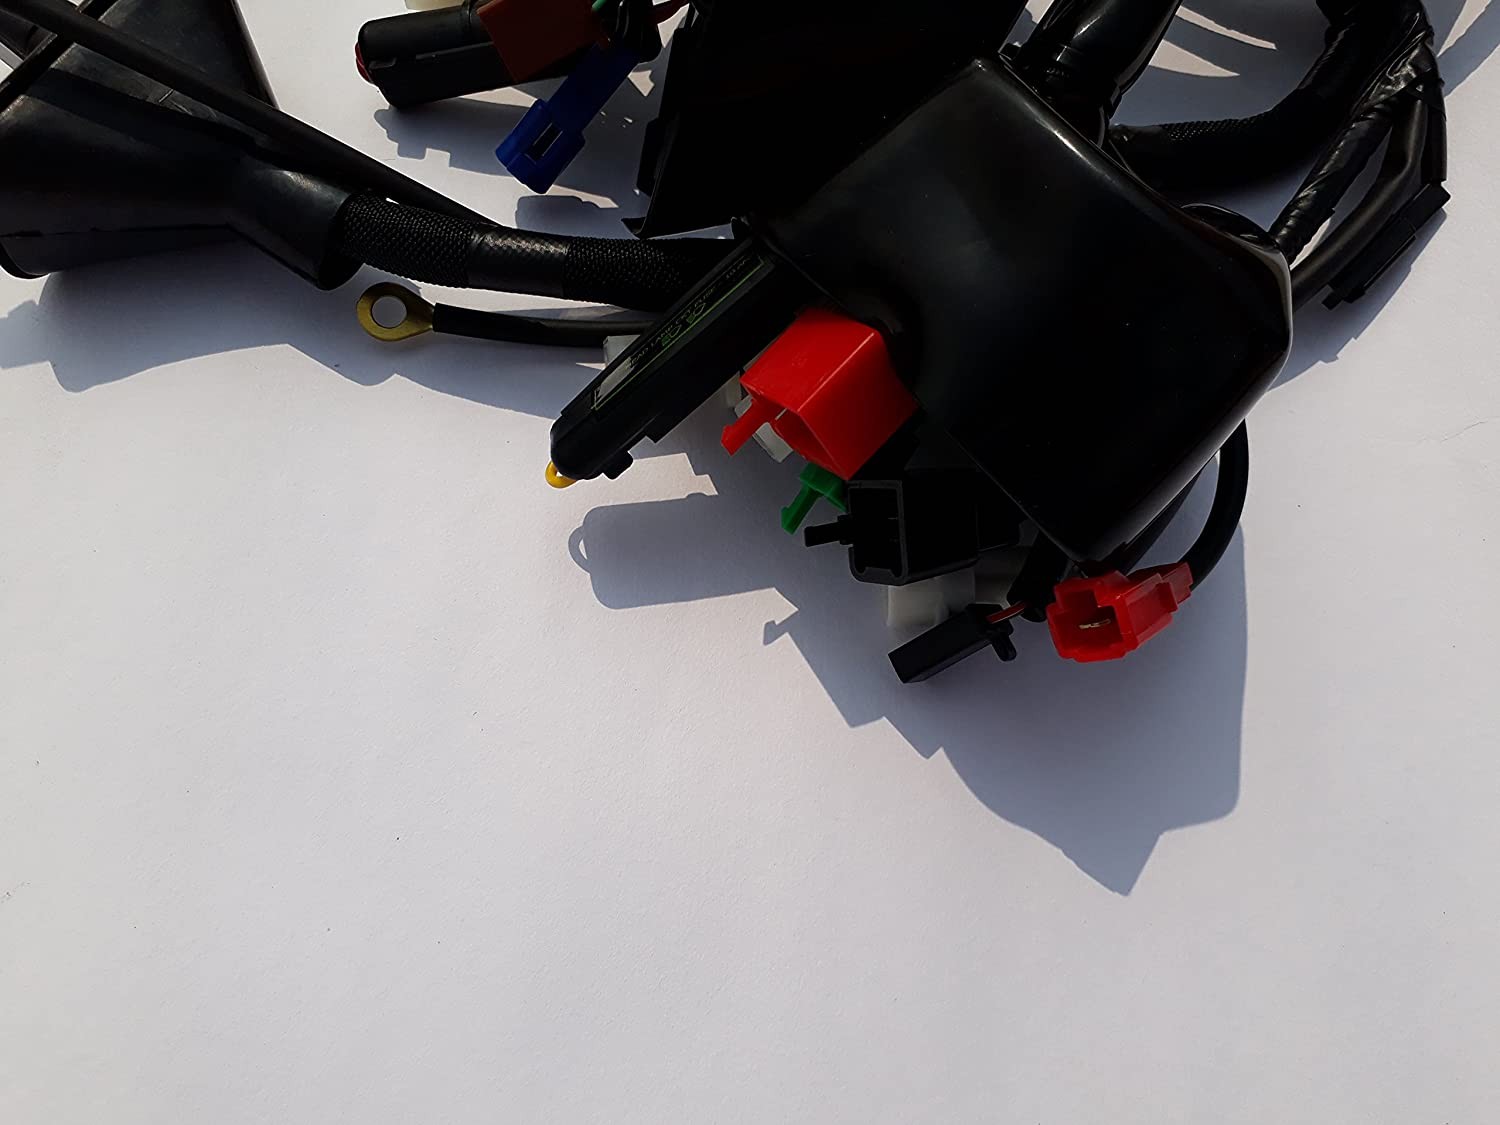 Eltecon Royal Enfield Wiring Harness For Classic 350 147952 D Online Buy Wholesale Motorcycle From China Car Motorbike